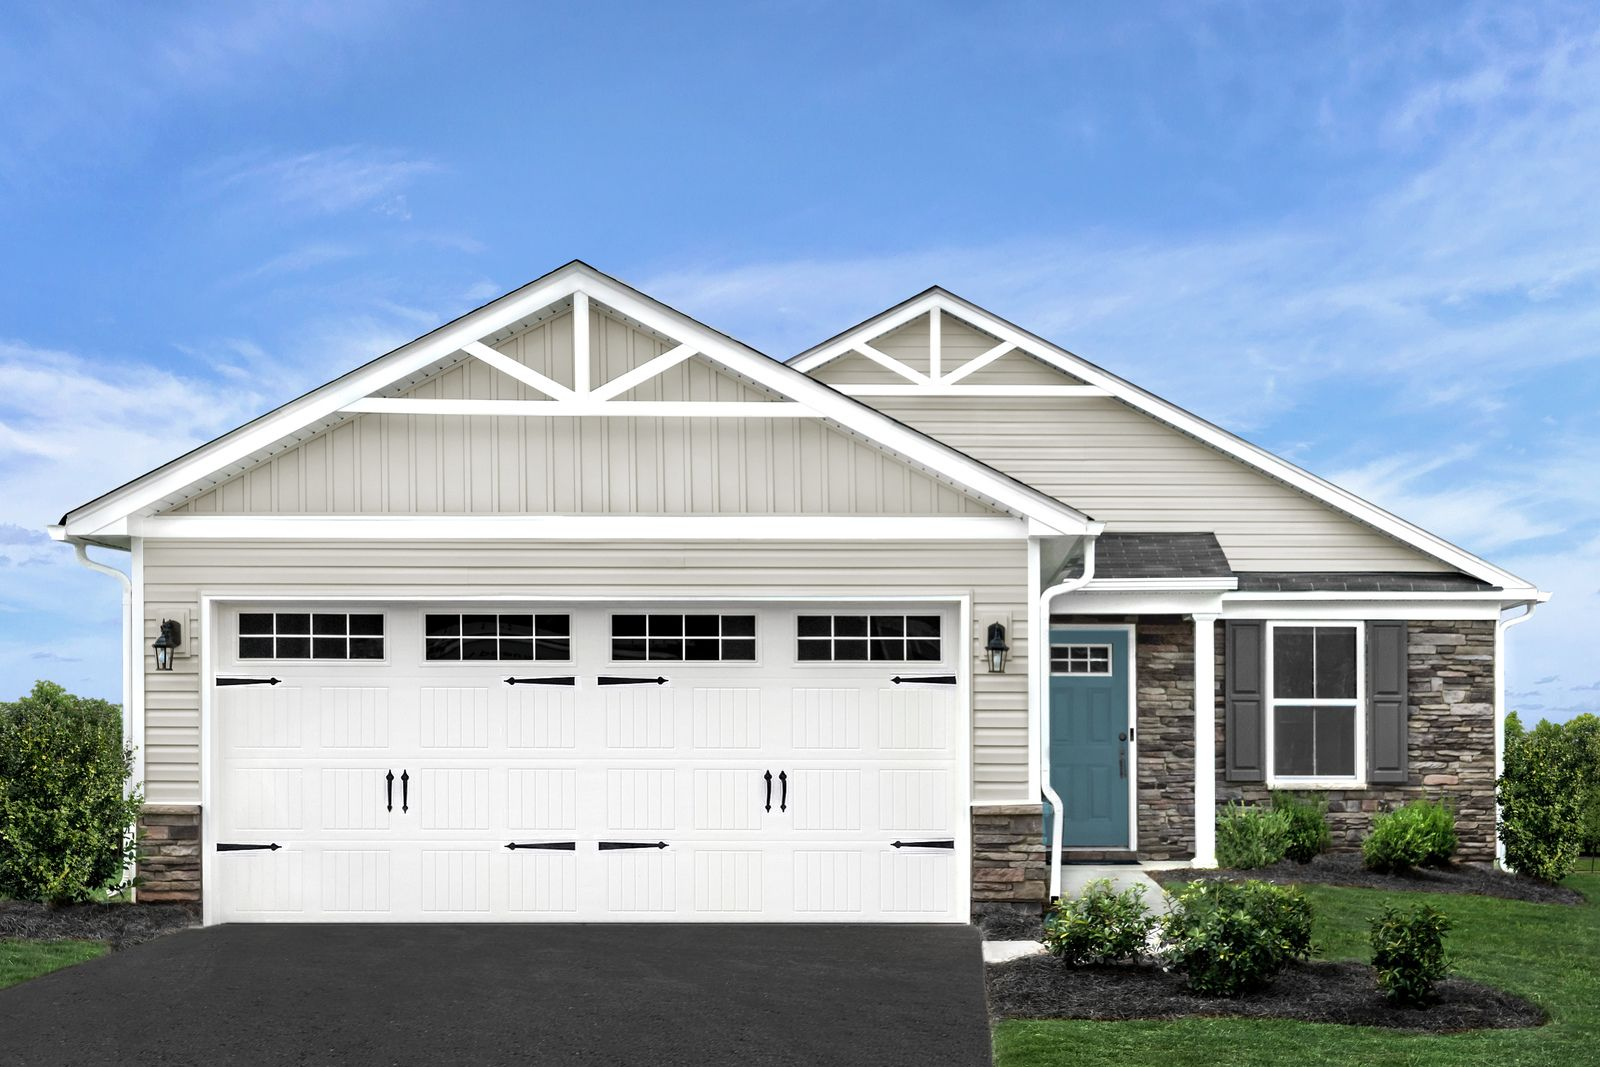 Welcome to Westtown Village:The lowest priced new ranch-style single family homes in Millsboro. Small low-maintenance community in convenient location just off Route 113.Click here to schedule your visit!